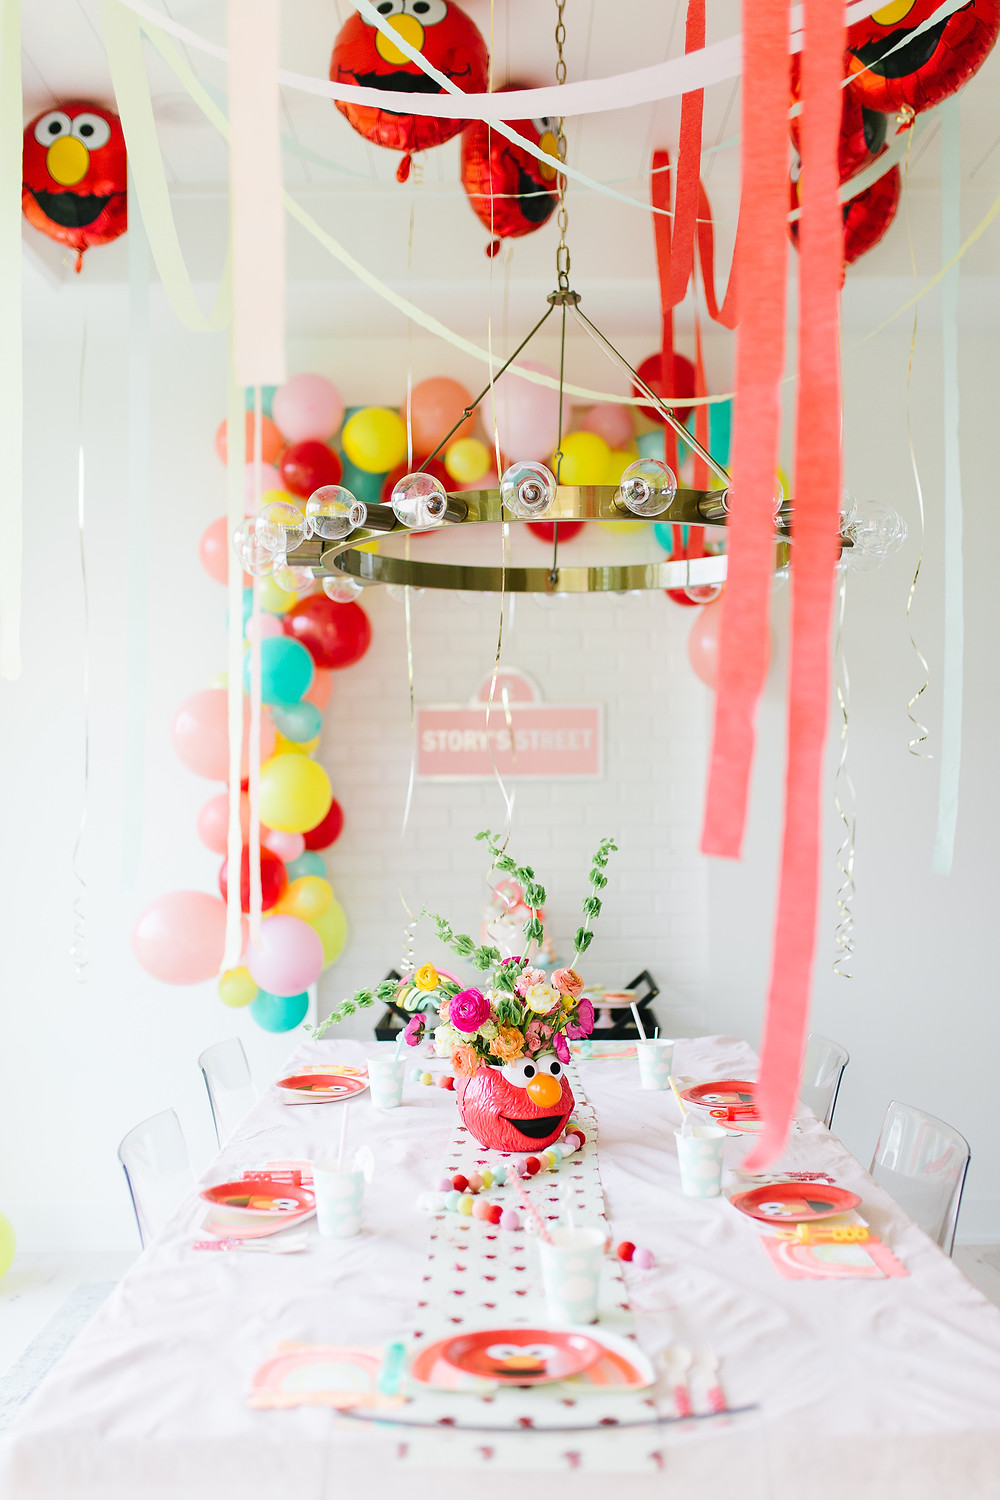 A Sesame Street themed birthday with an Elmo cake and bright coloured decorations hung over a decorated party table.